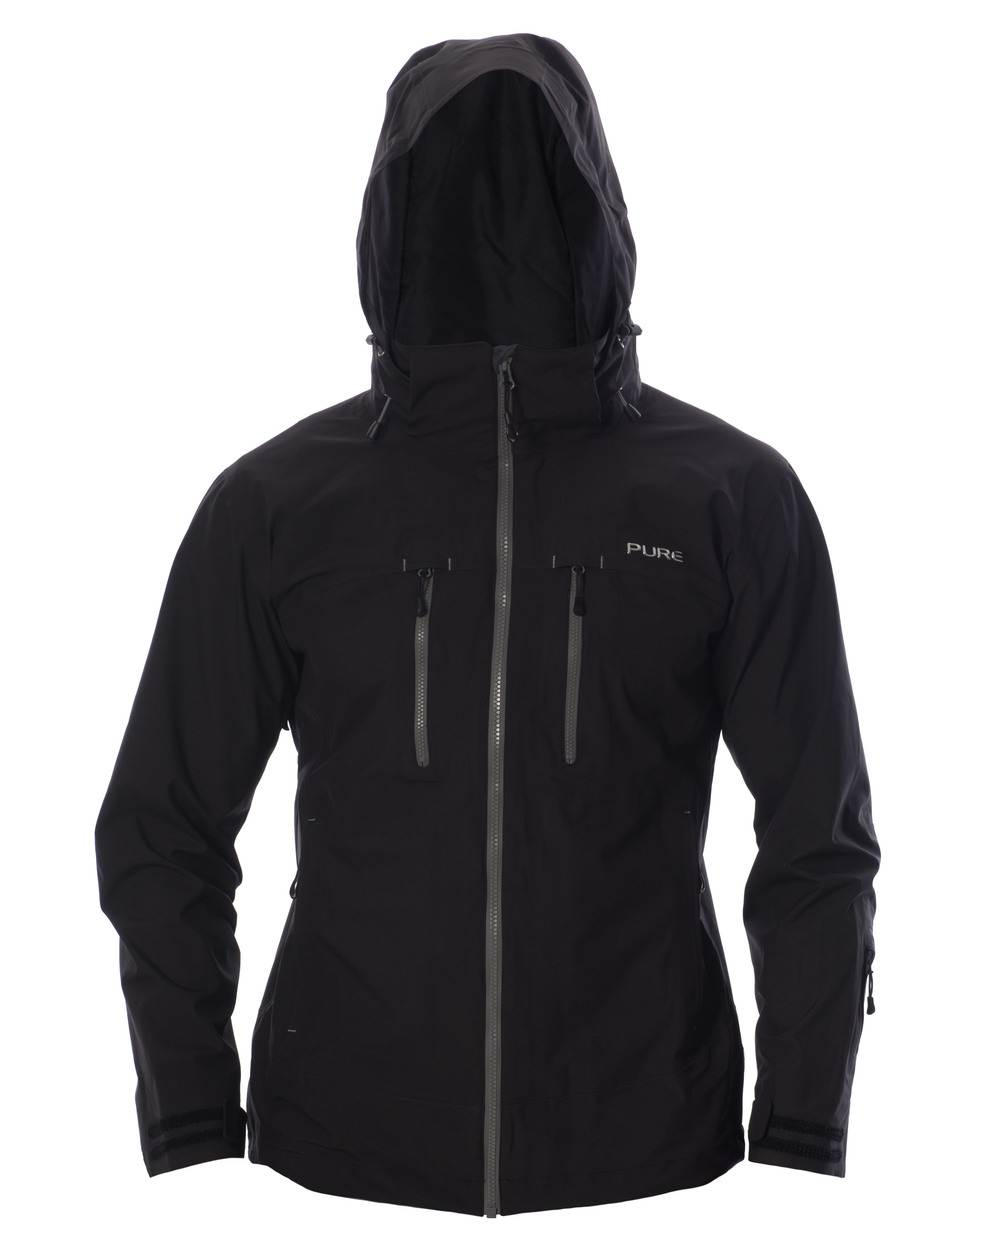 Copy of Everest Men's Jacket - Black / Ebony Zips